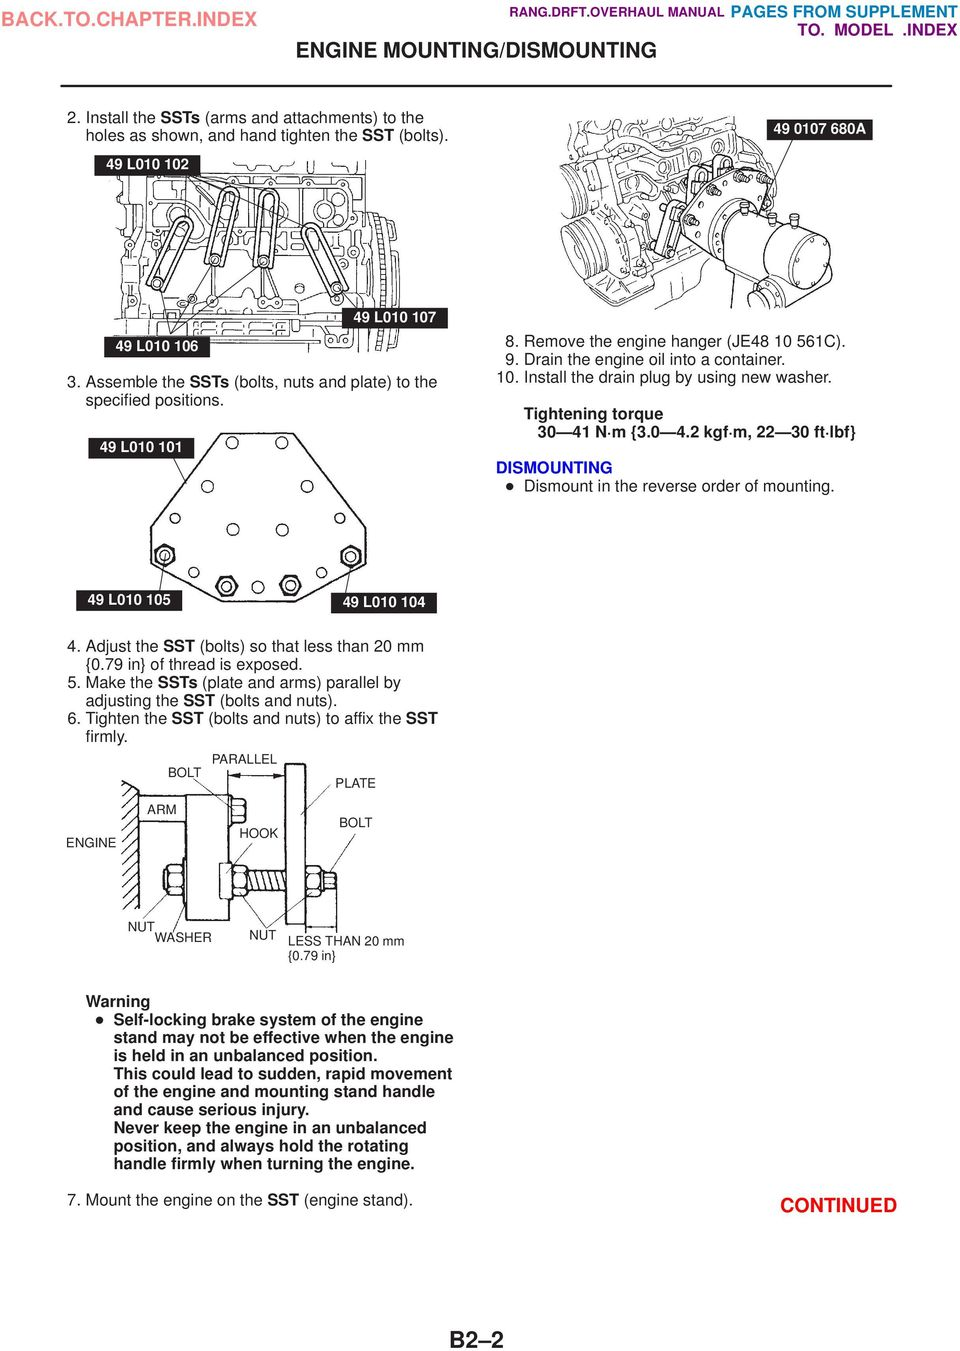 Ranger Drifter Overhaul Manual Pdf 2004 Mazda 6 3 0 Engine Diagram Tightening Torque 30 41 N M 42 Kgf 22 Ft Lbf